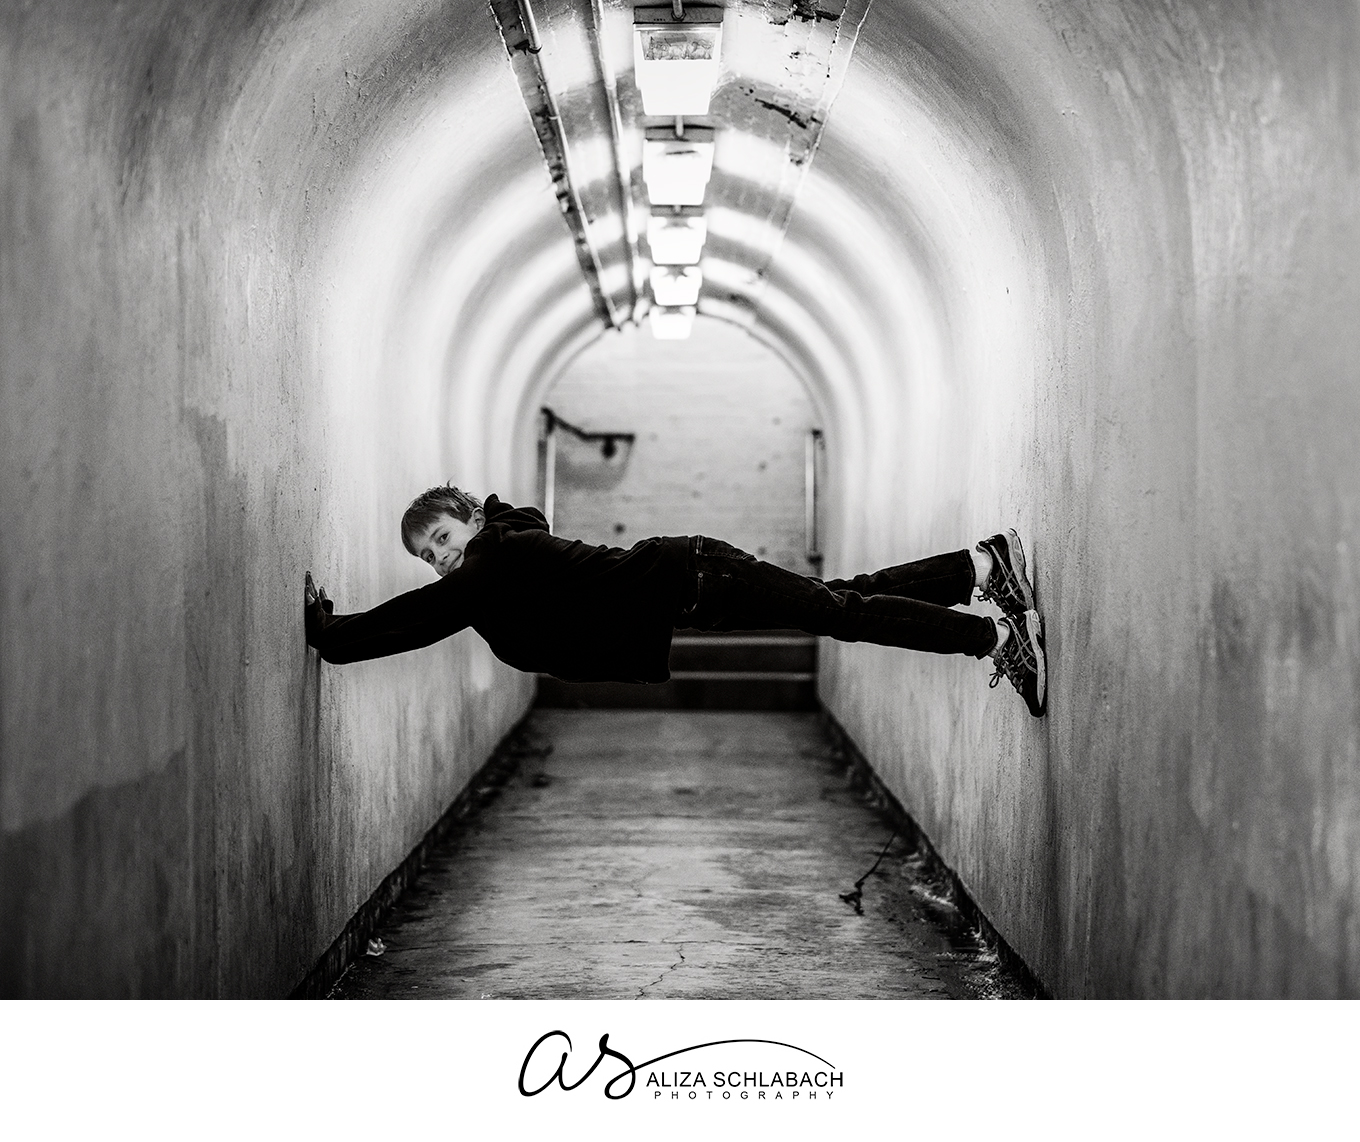 Photo of a boy doing stunts in a train tunnel